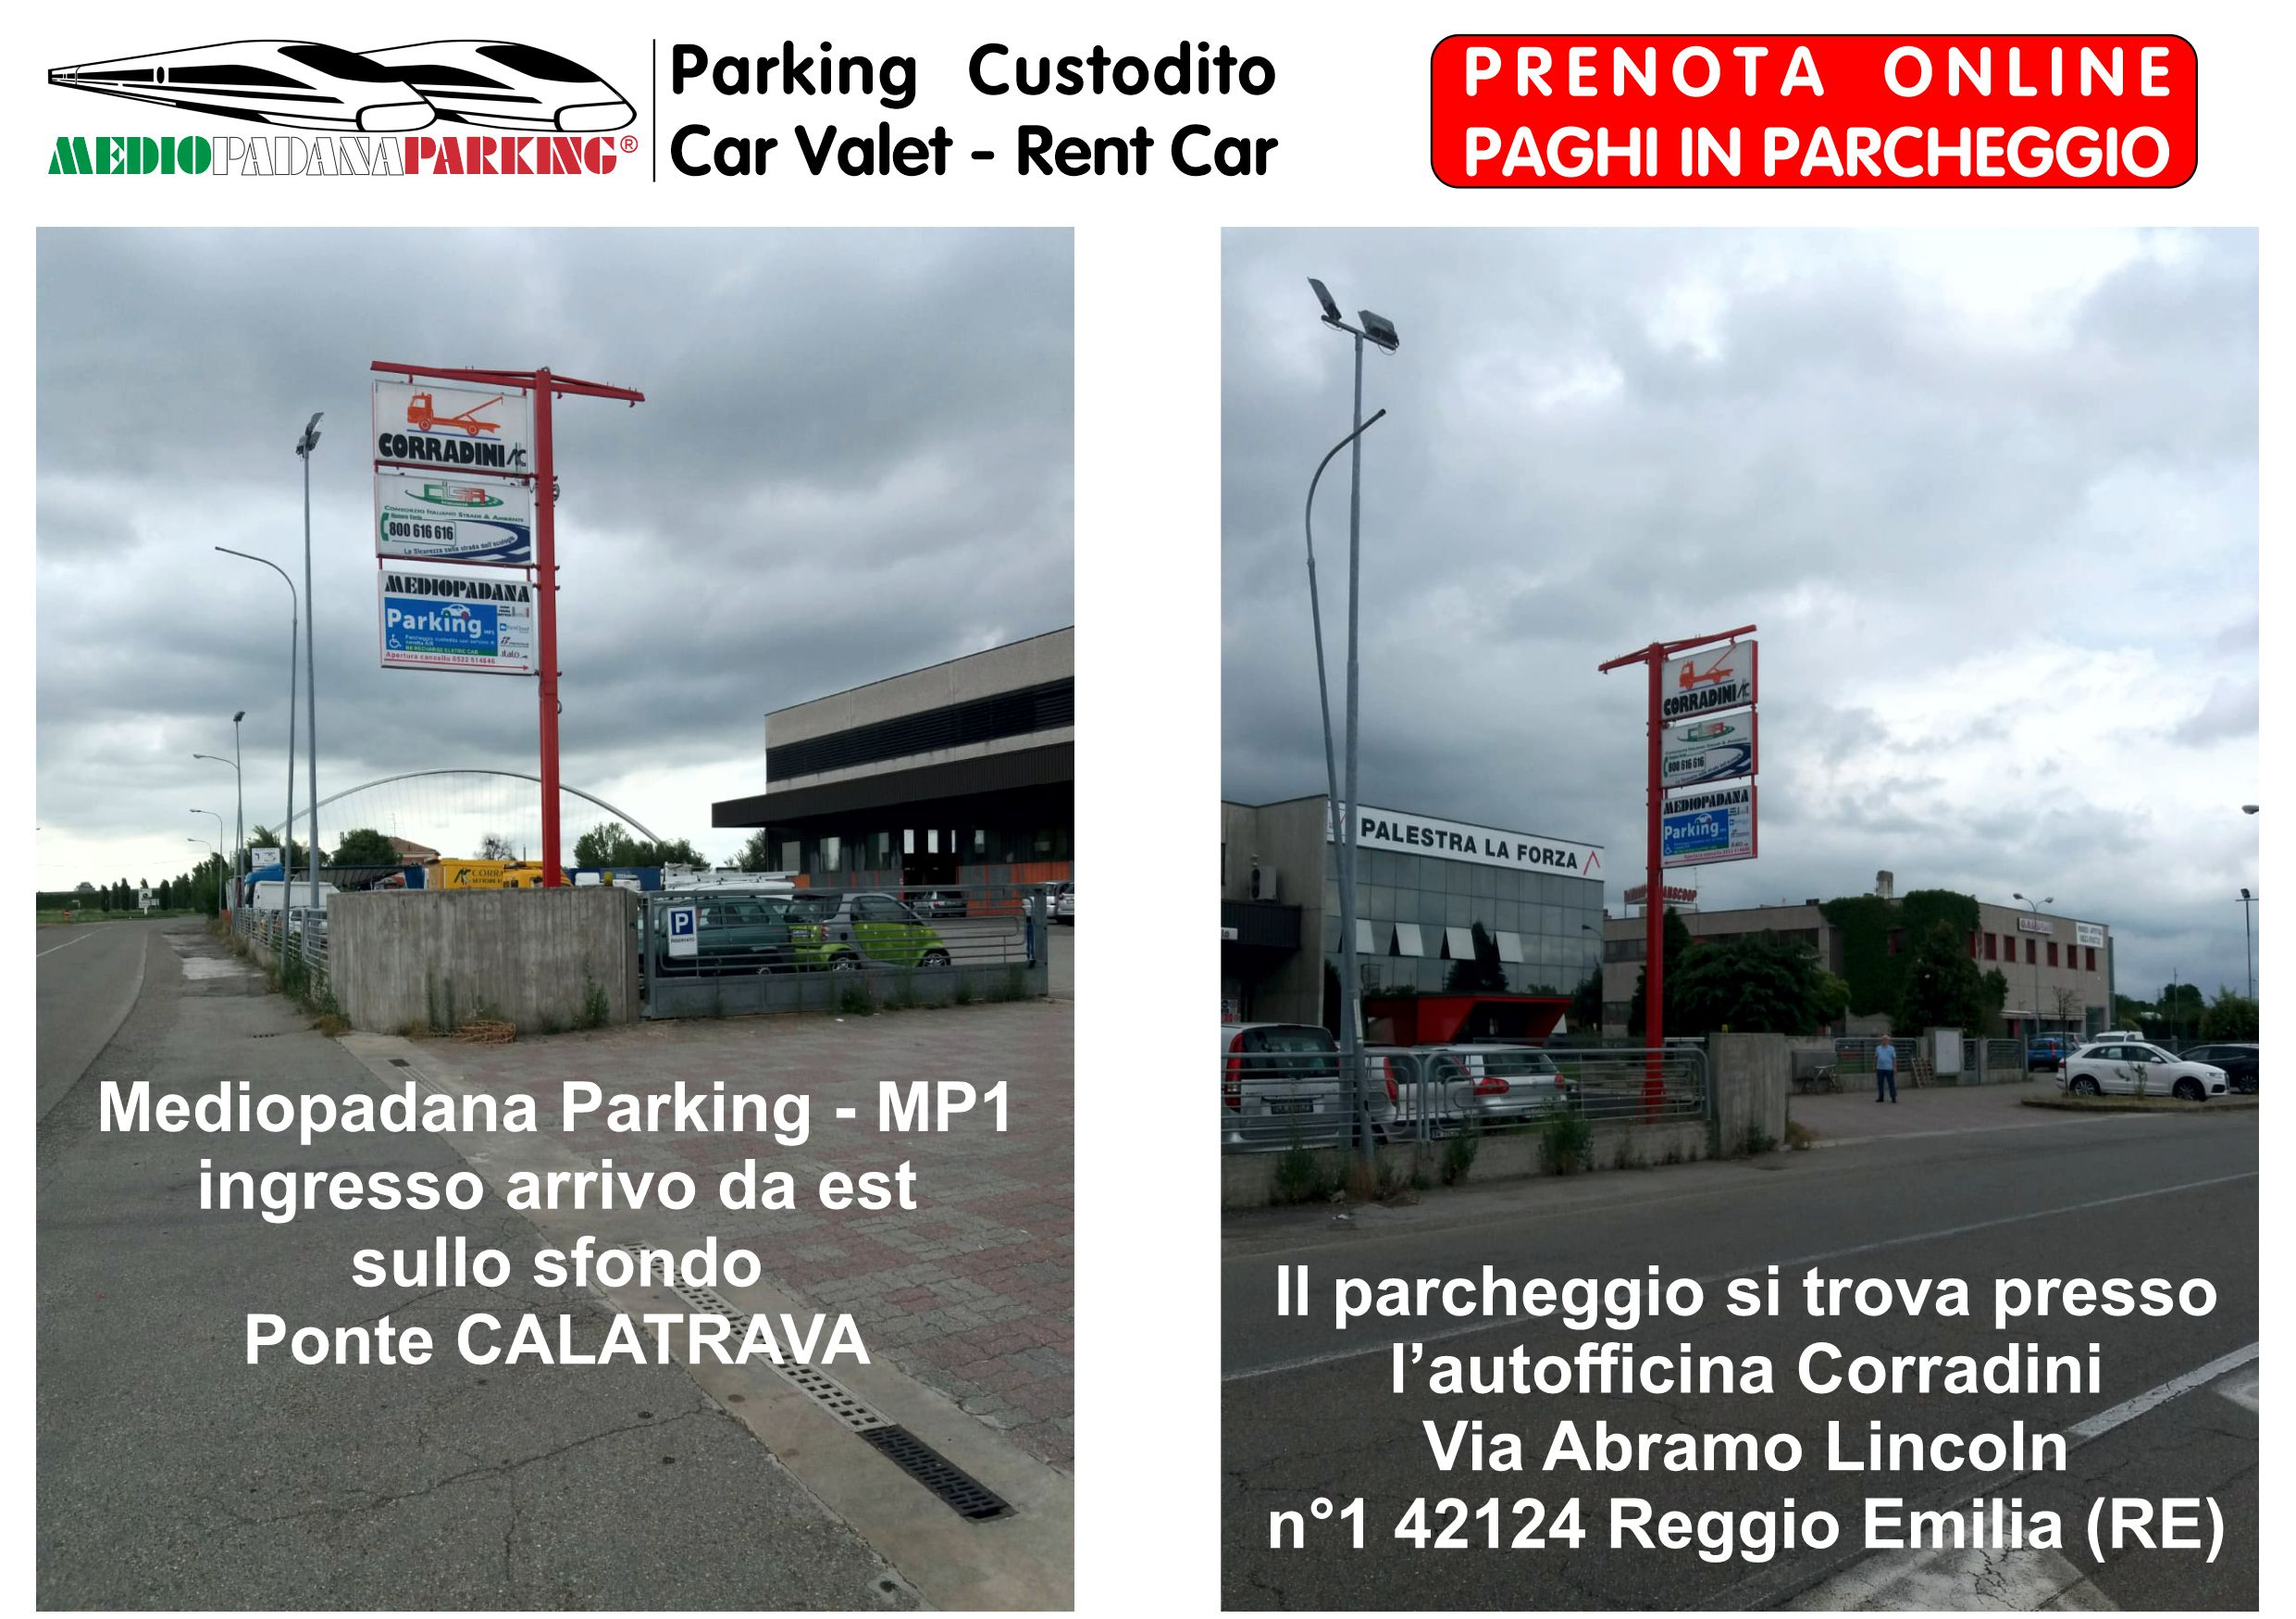 Mediopadana Parking - MP1